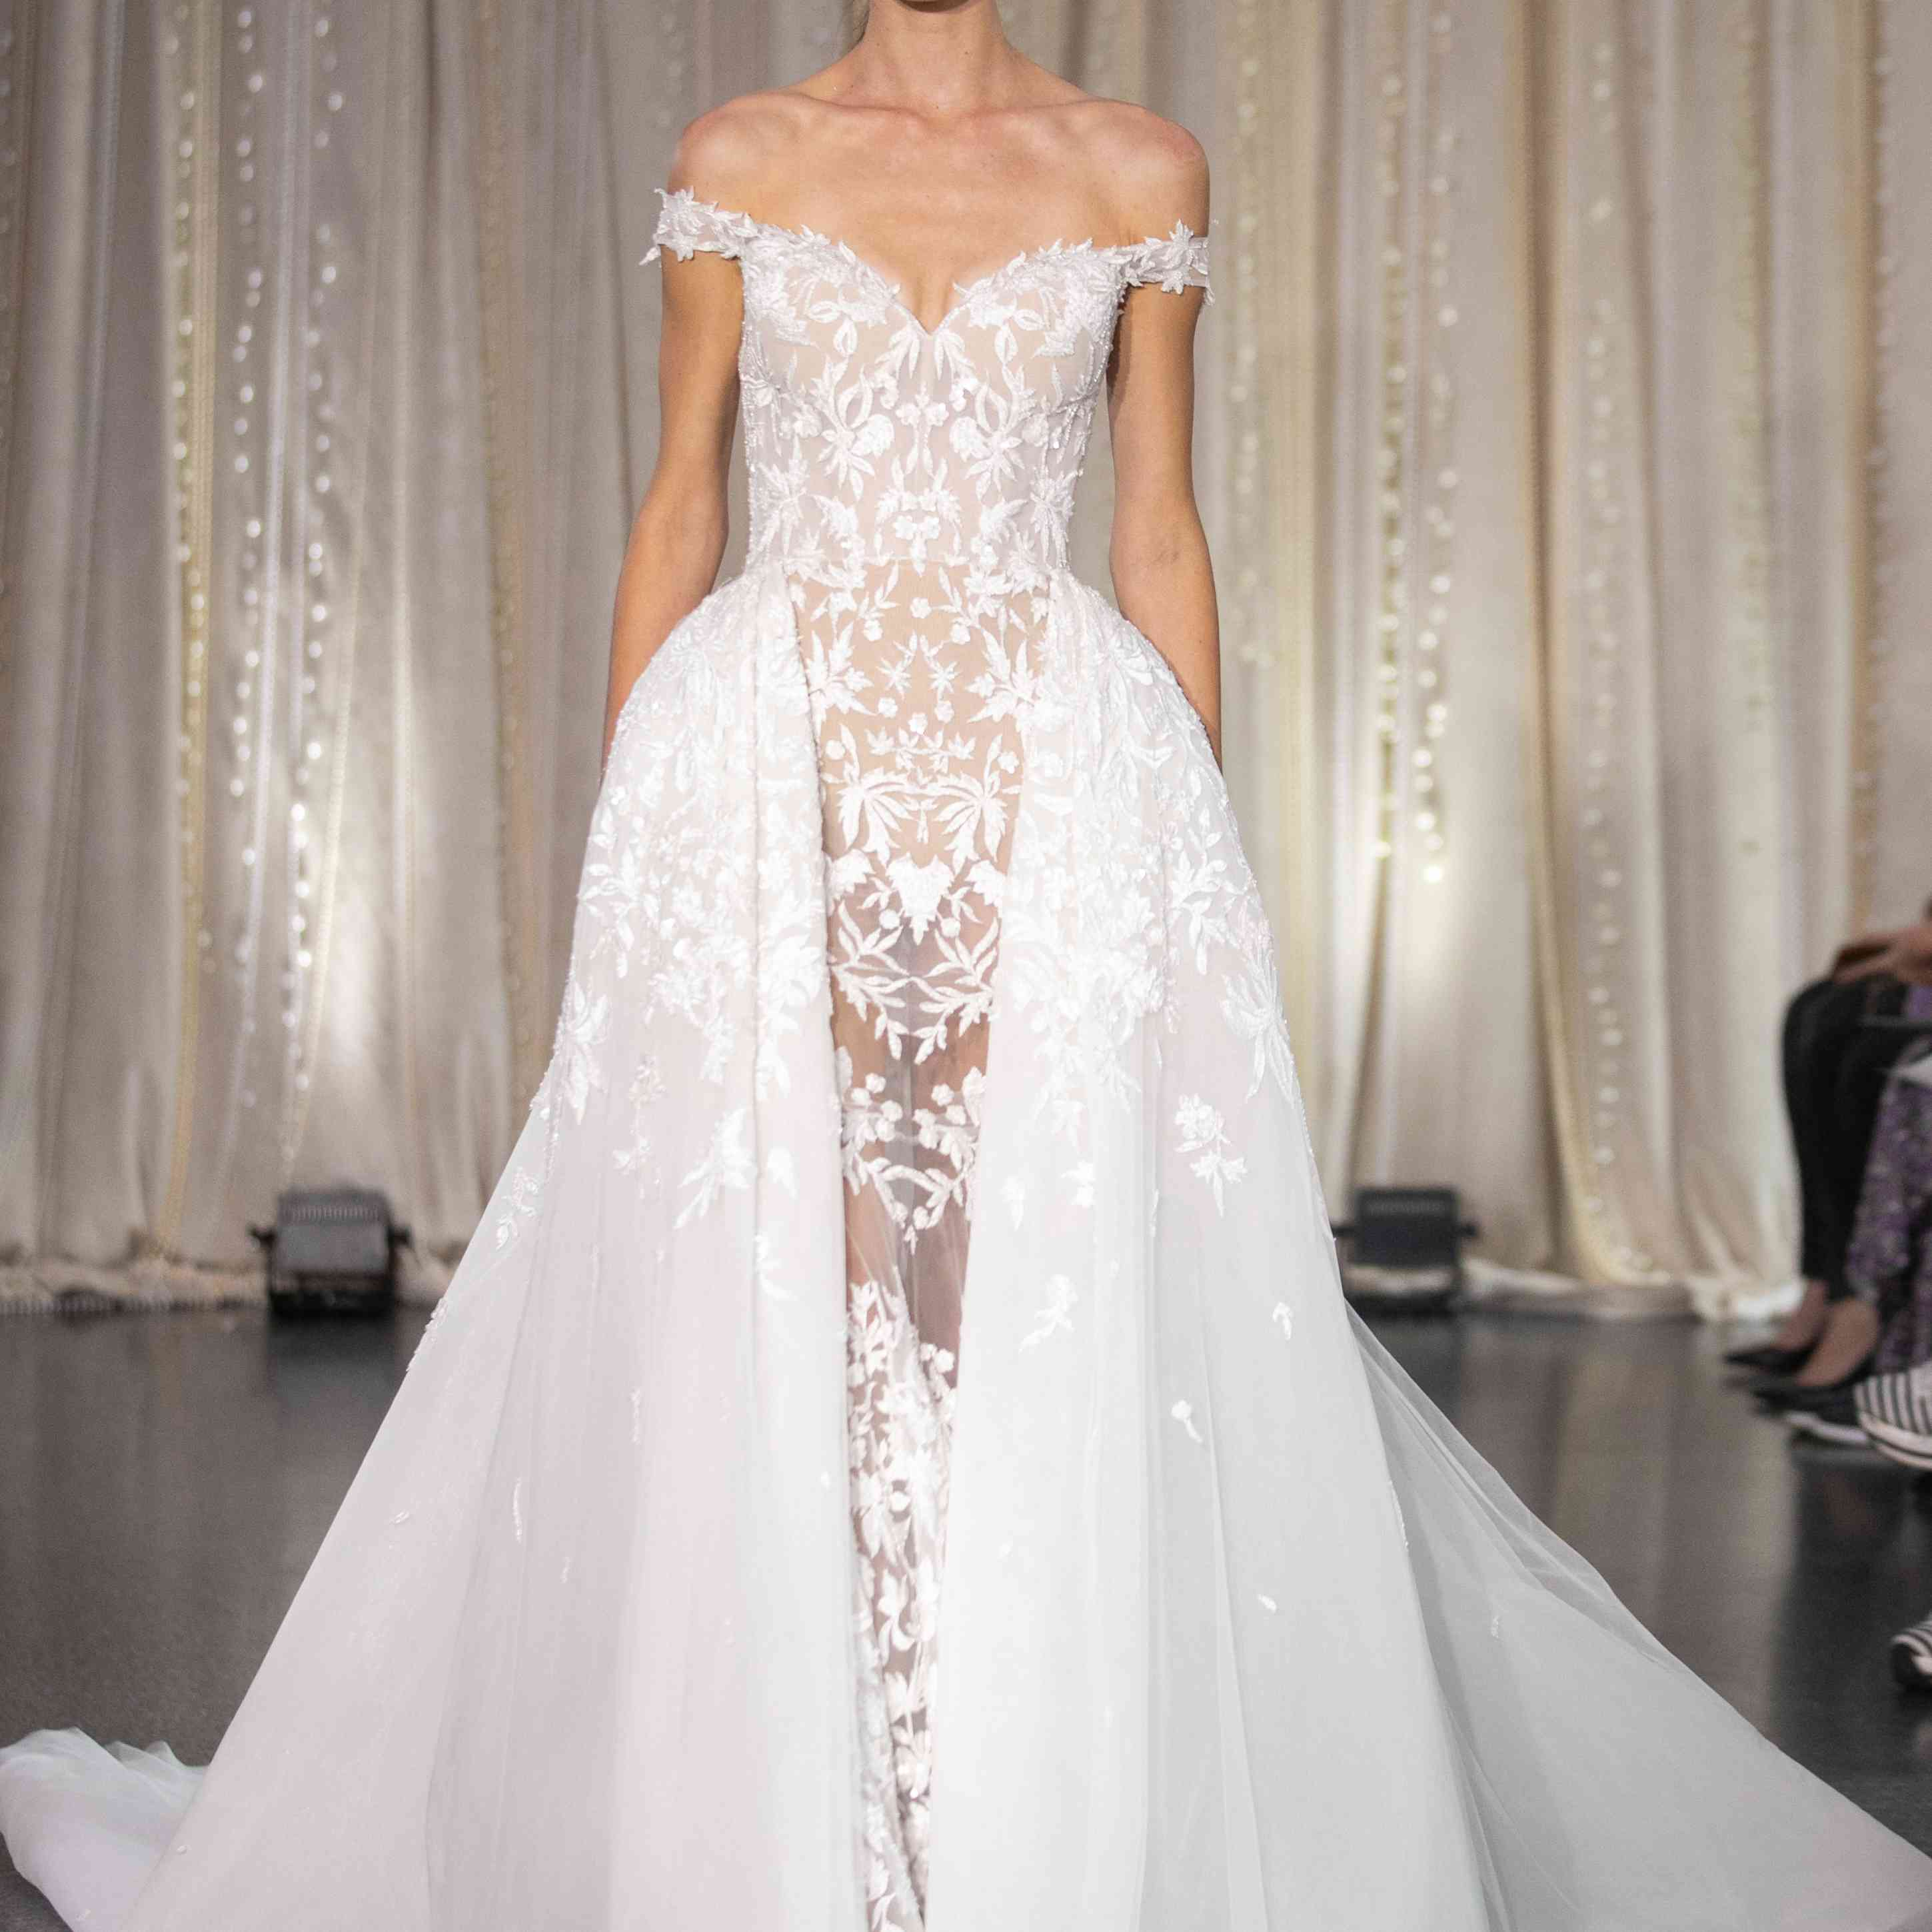 Model in off-the-shoulder wedding dress with overskirt